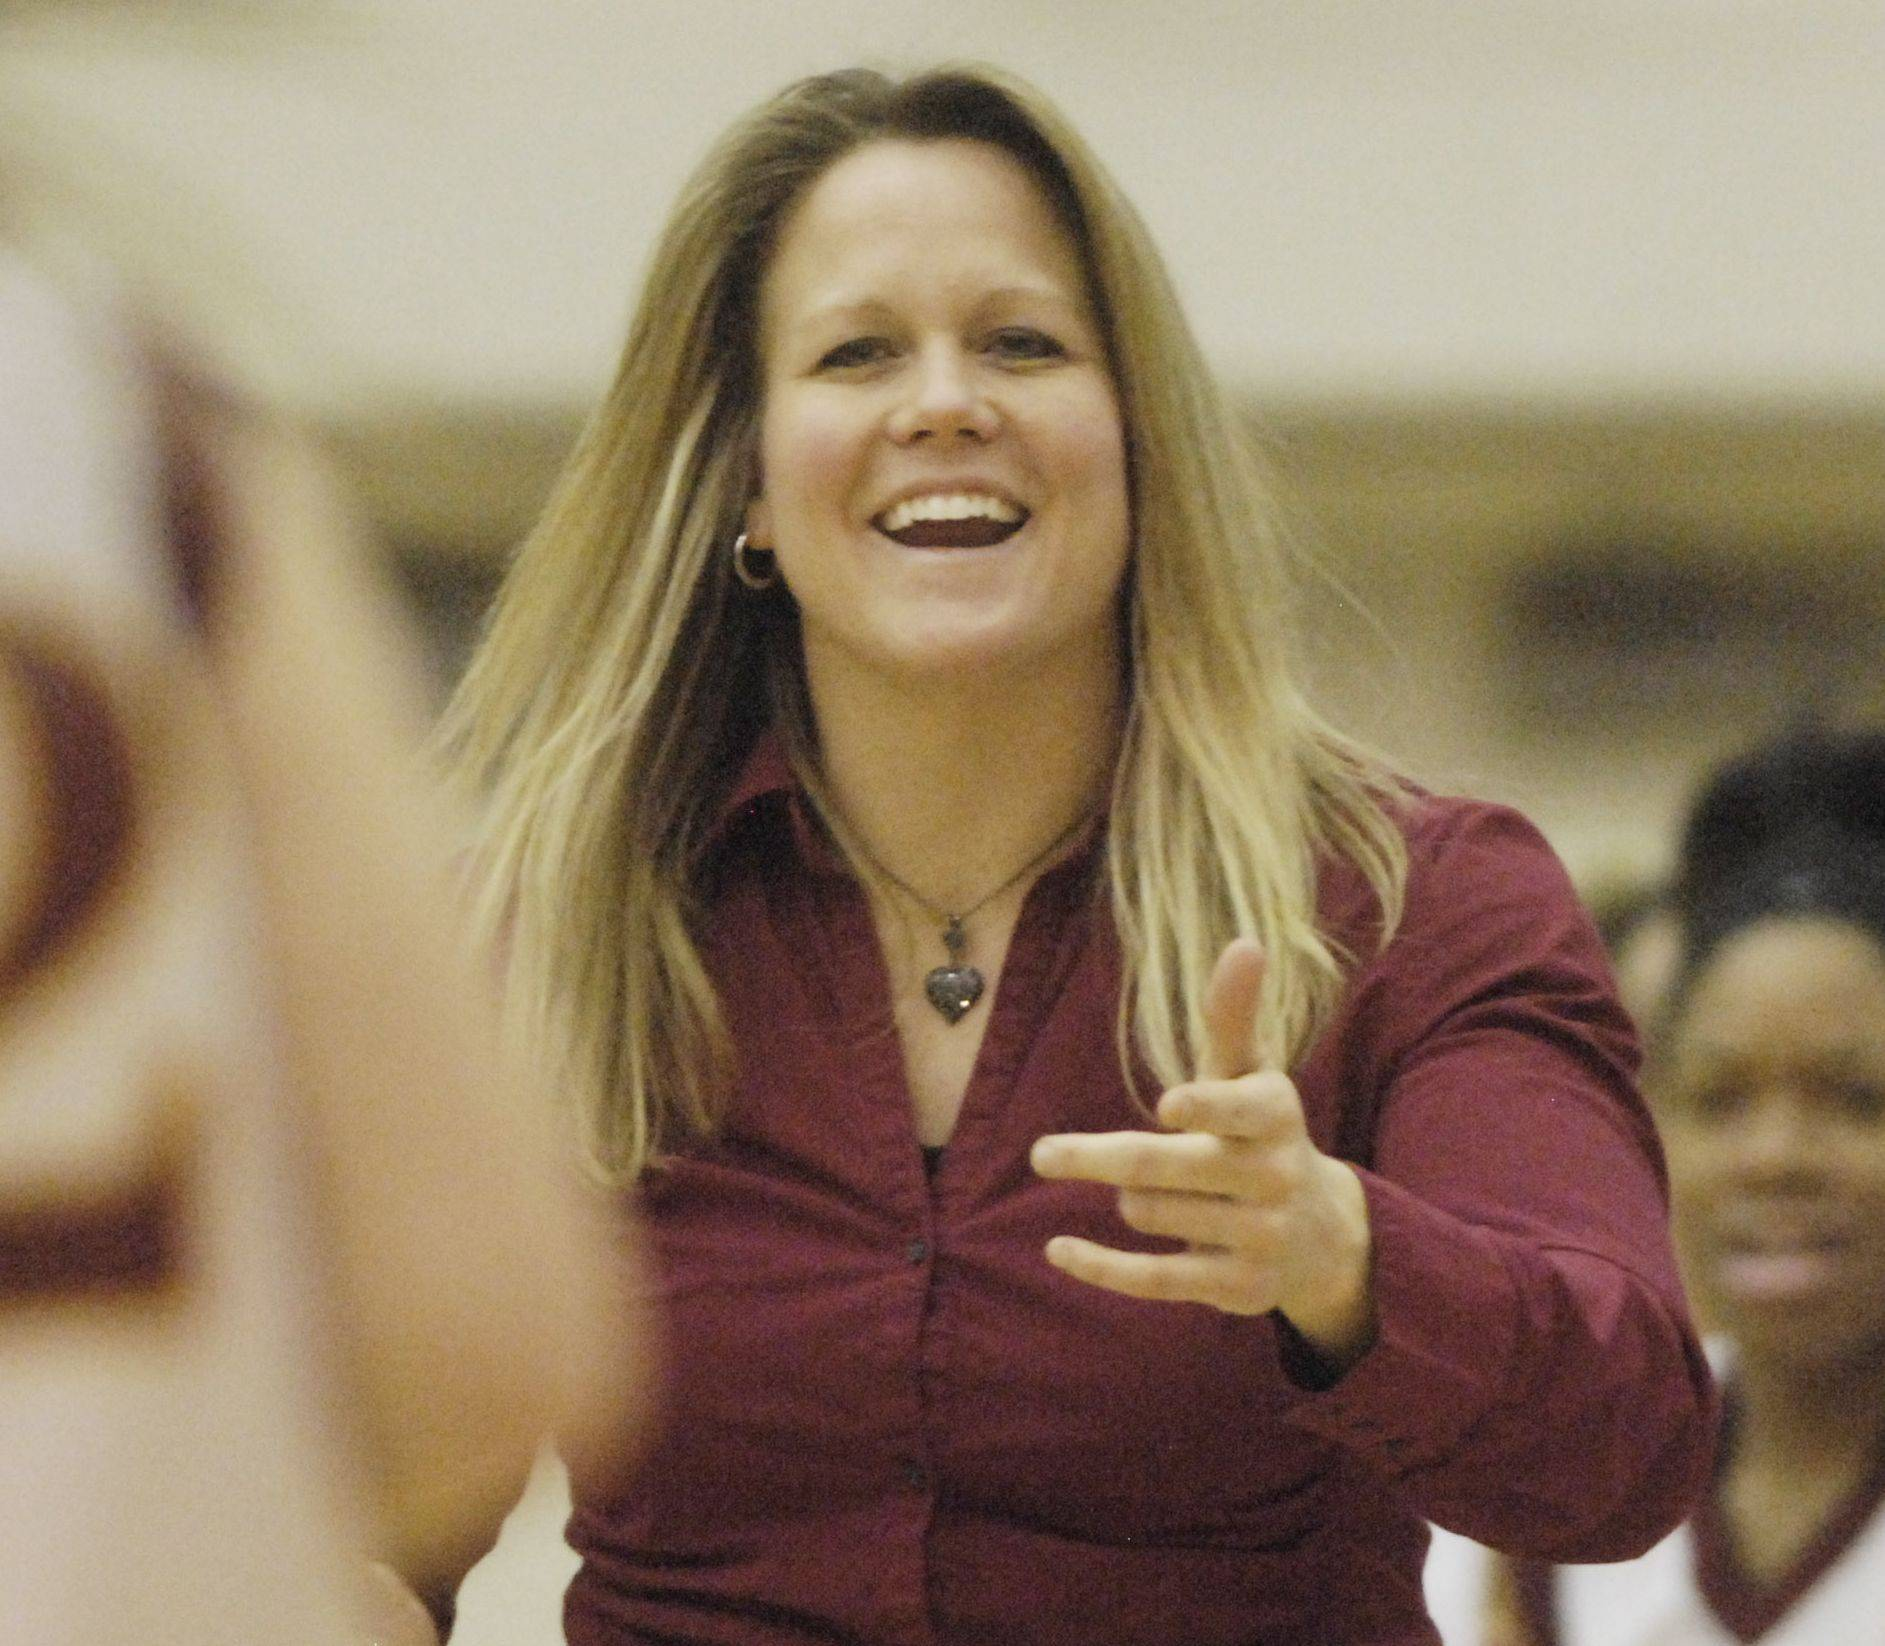 Schaumburg girls basketball coach Ashley Berggren will be inducted into the Illinois Basketball Coaches Association Hall of Fame later this season. celebrates with her team after defeating St. Charles East during Tuesday's regional semifinal at Bartlett High School.